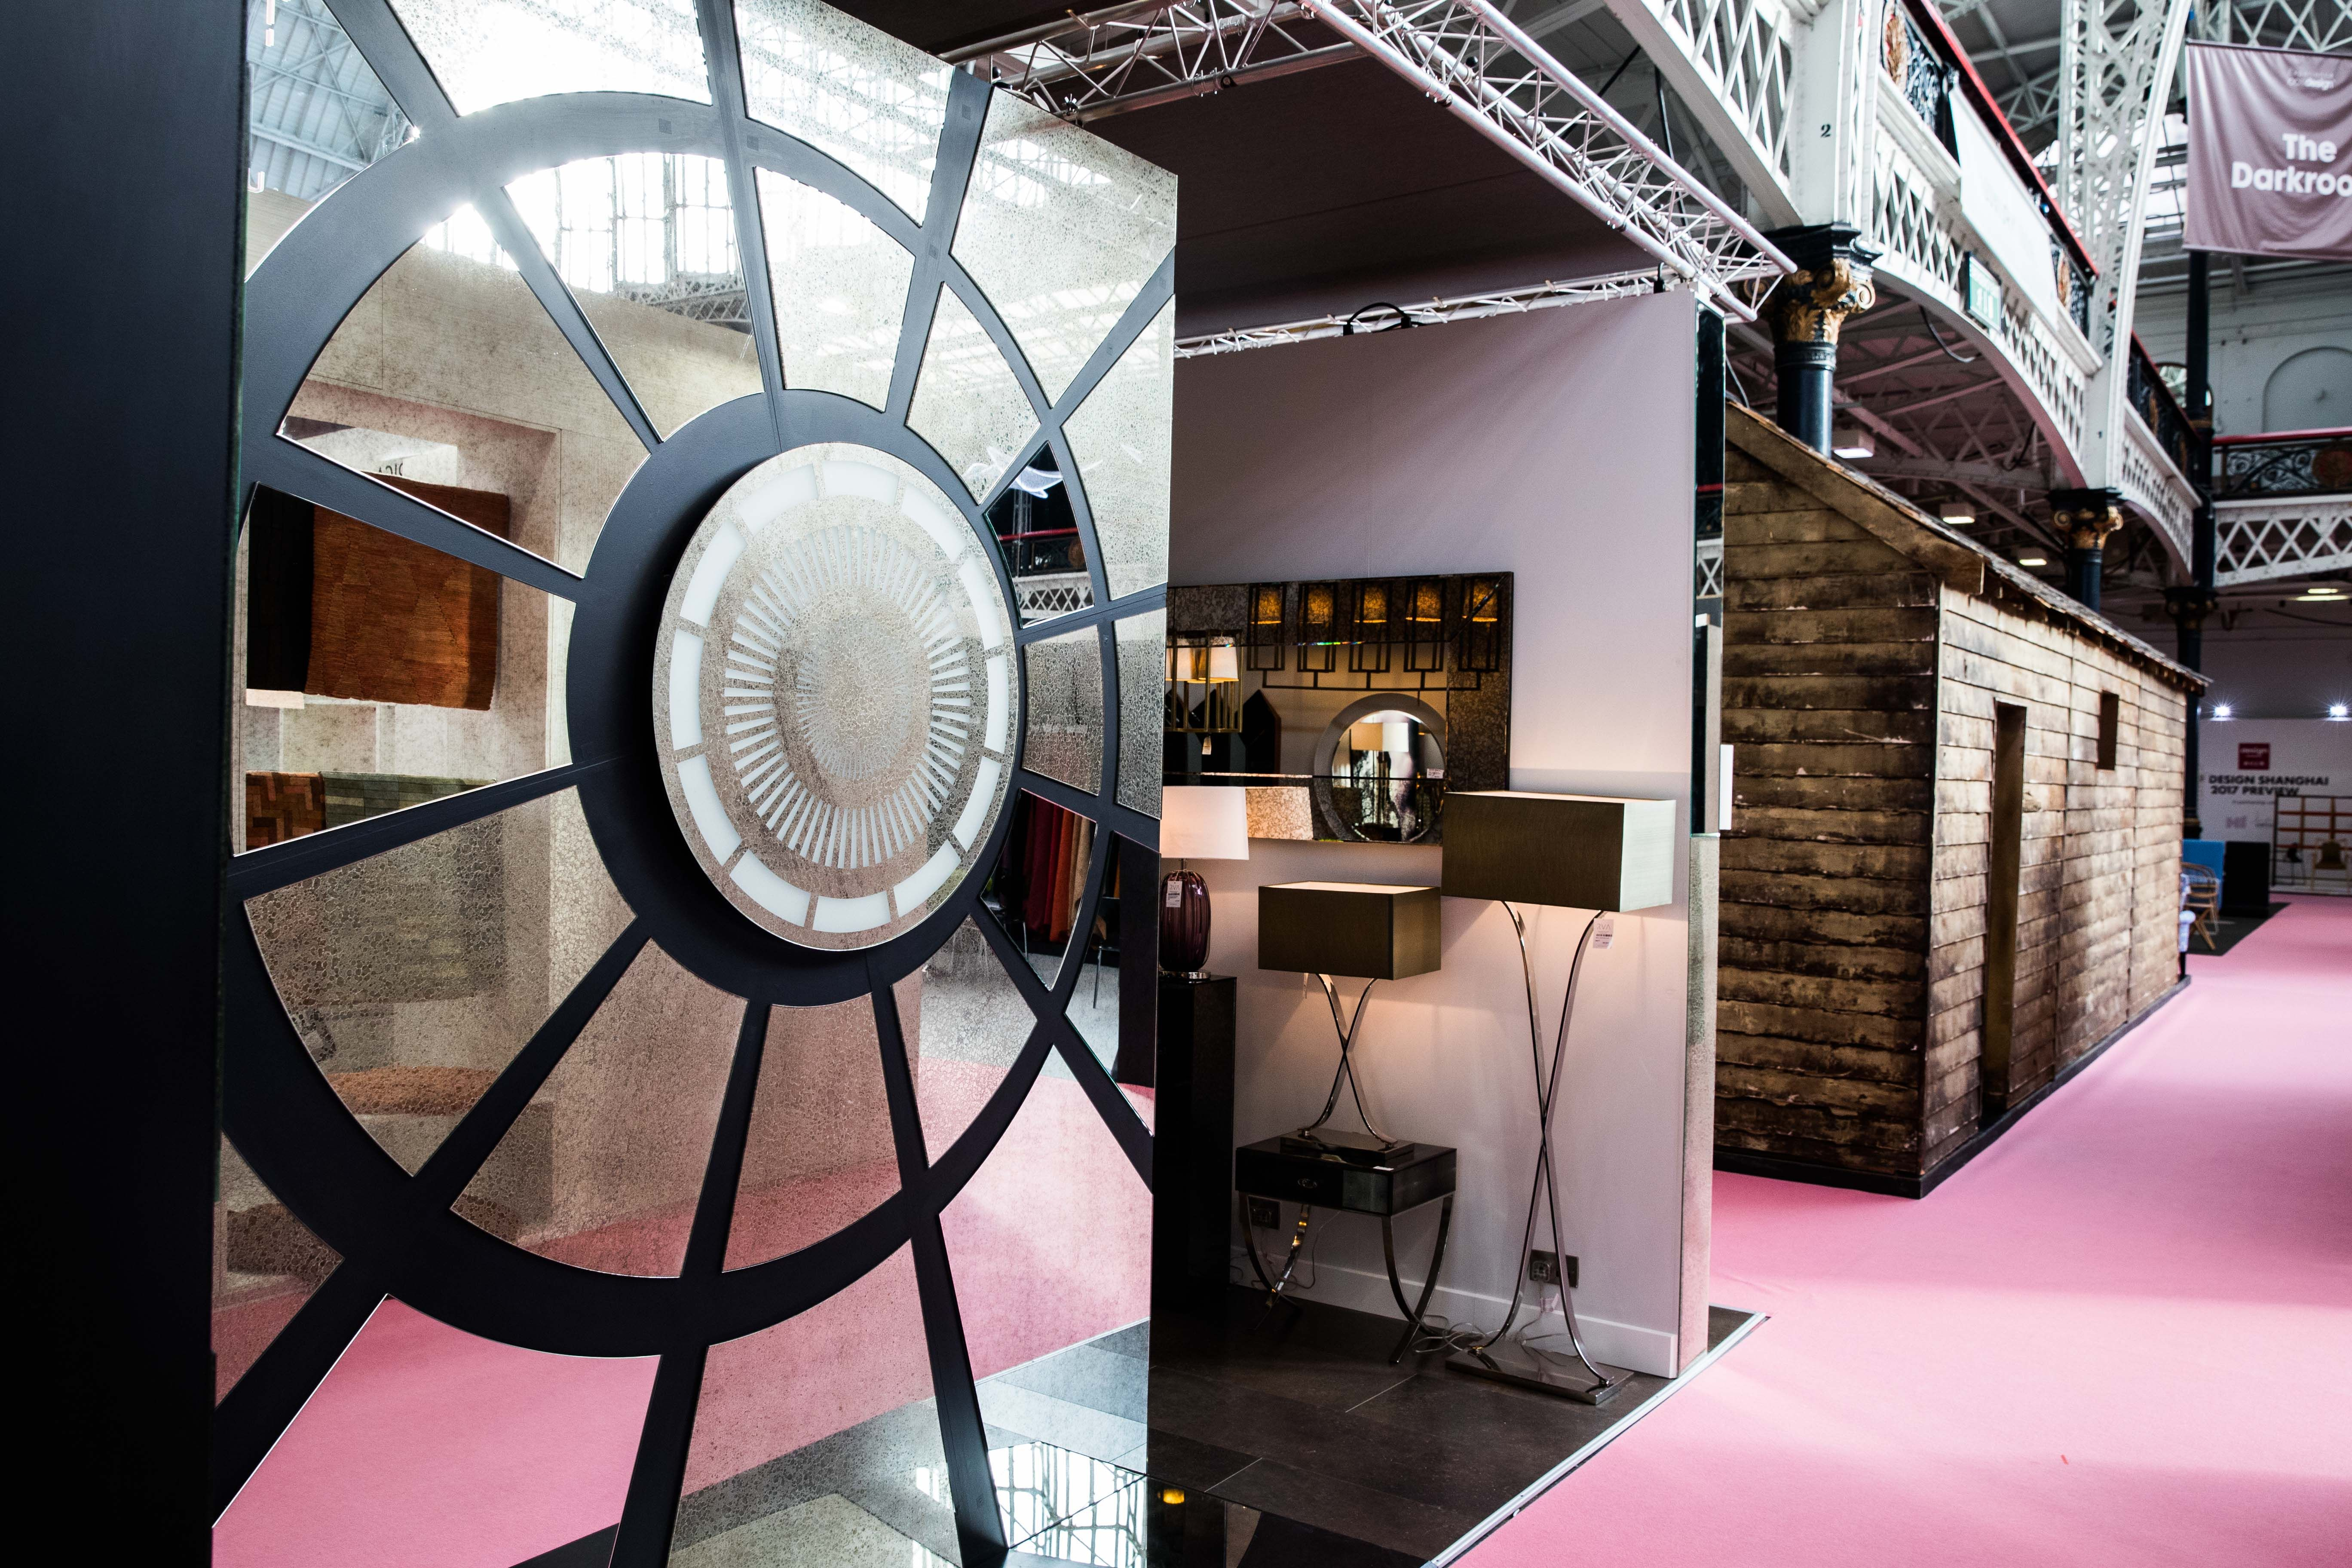 Pin By Astley On 100 Design Show 2016 Design Table Fan Design Show